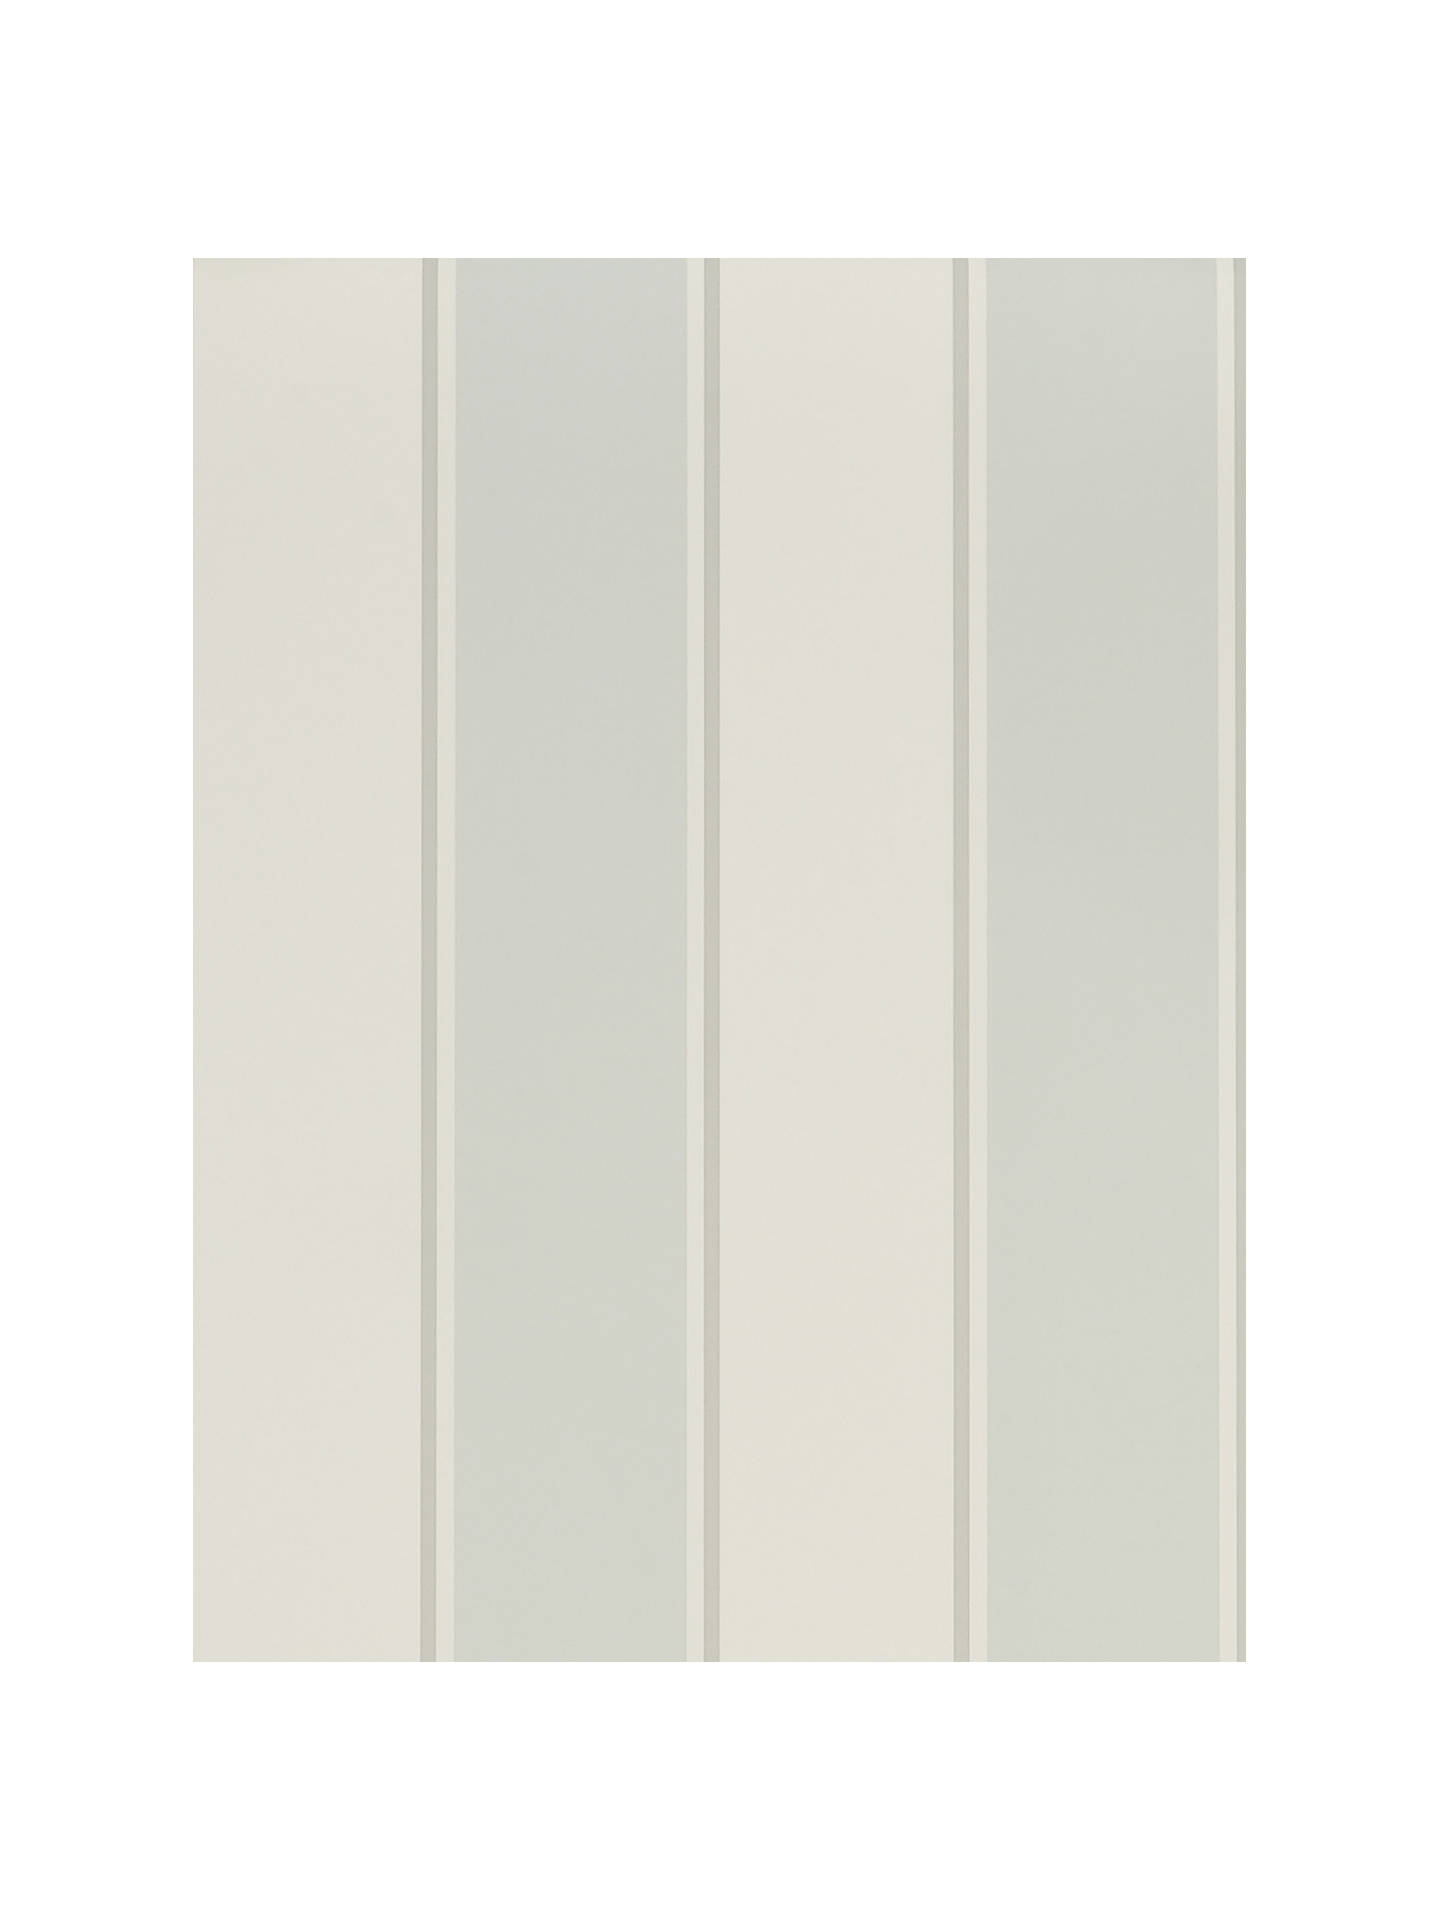 BuyRalph Lauren Mapleton Stripe Wallpaper, Bluestone PRL703/01 Online at johnlewis.com